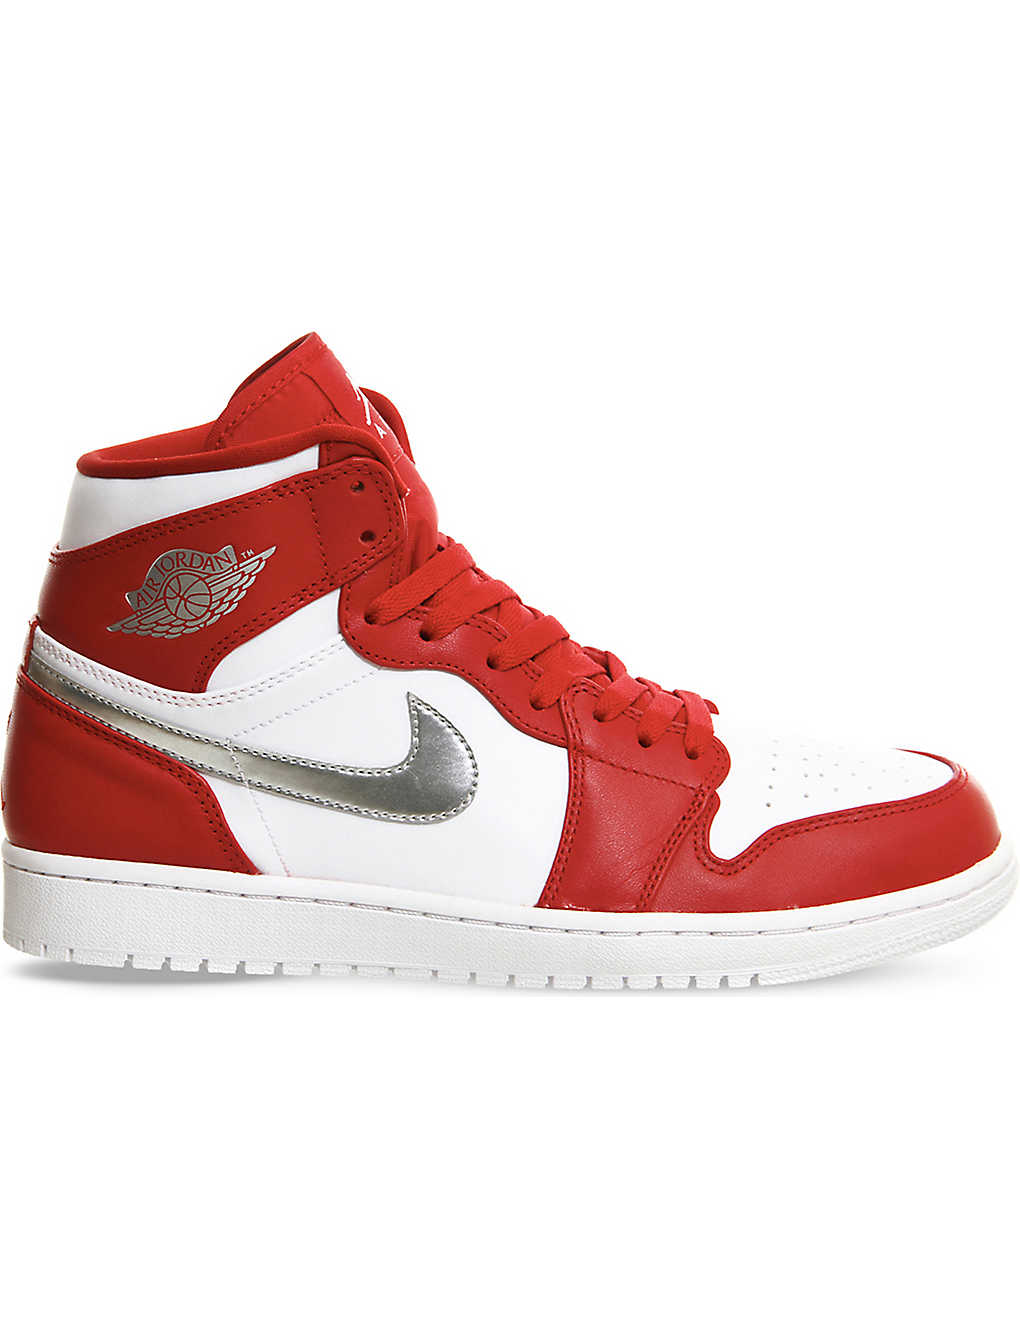 2316ee58dd5 NIKE - Air Jordan 1 Retro leather high-top trainers | Selfridges.com